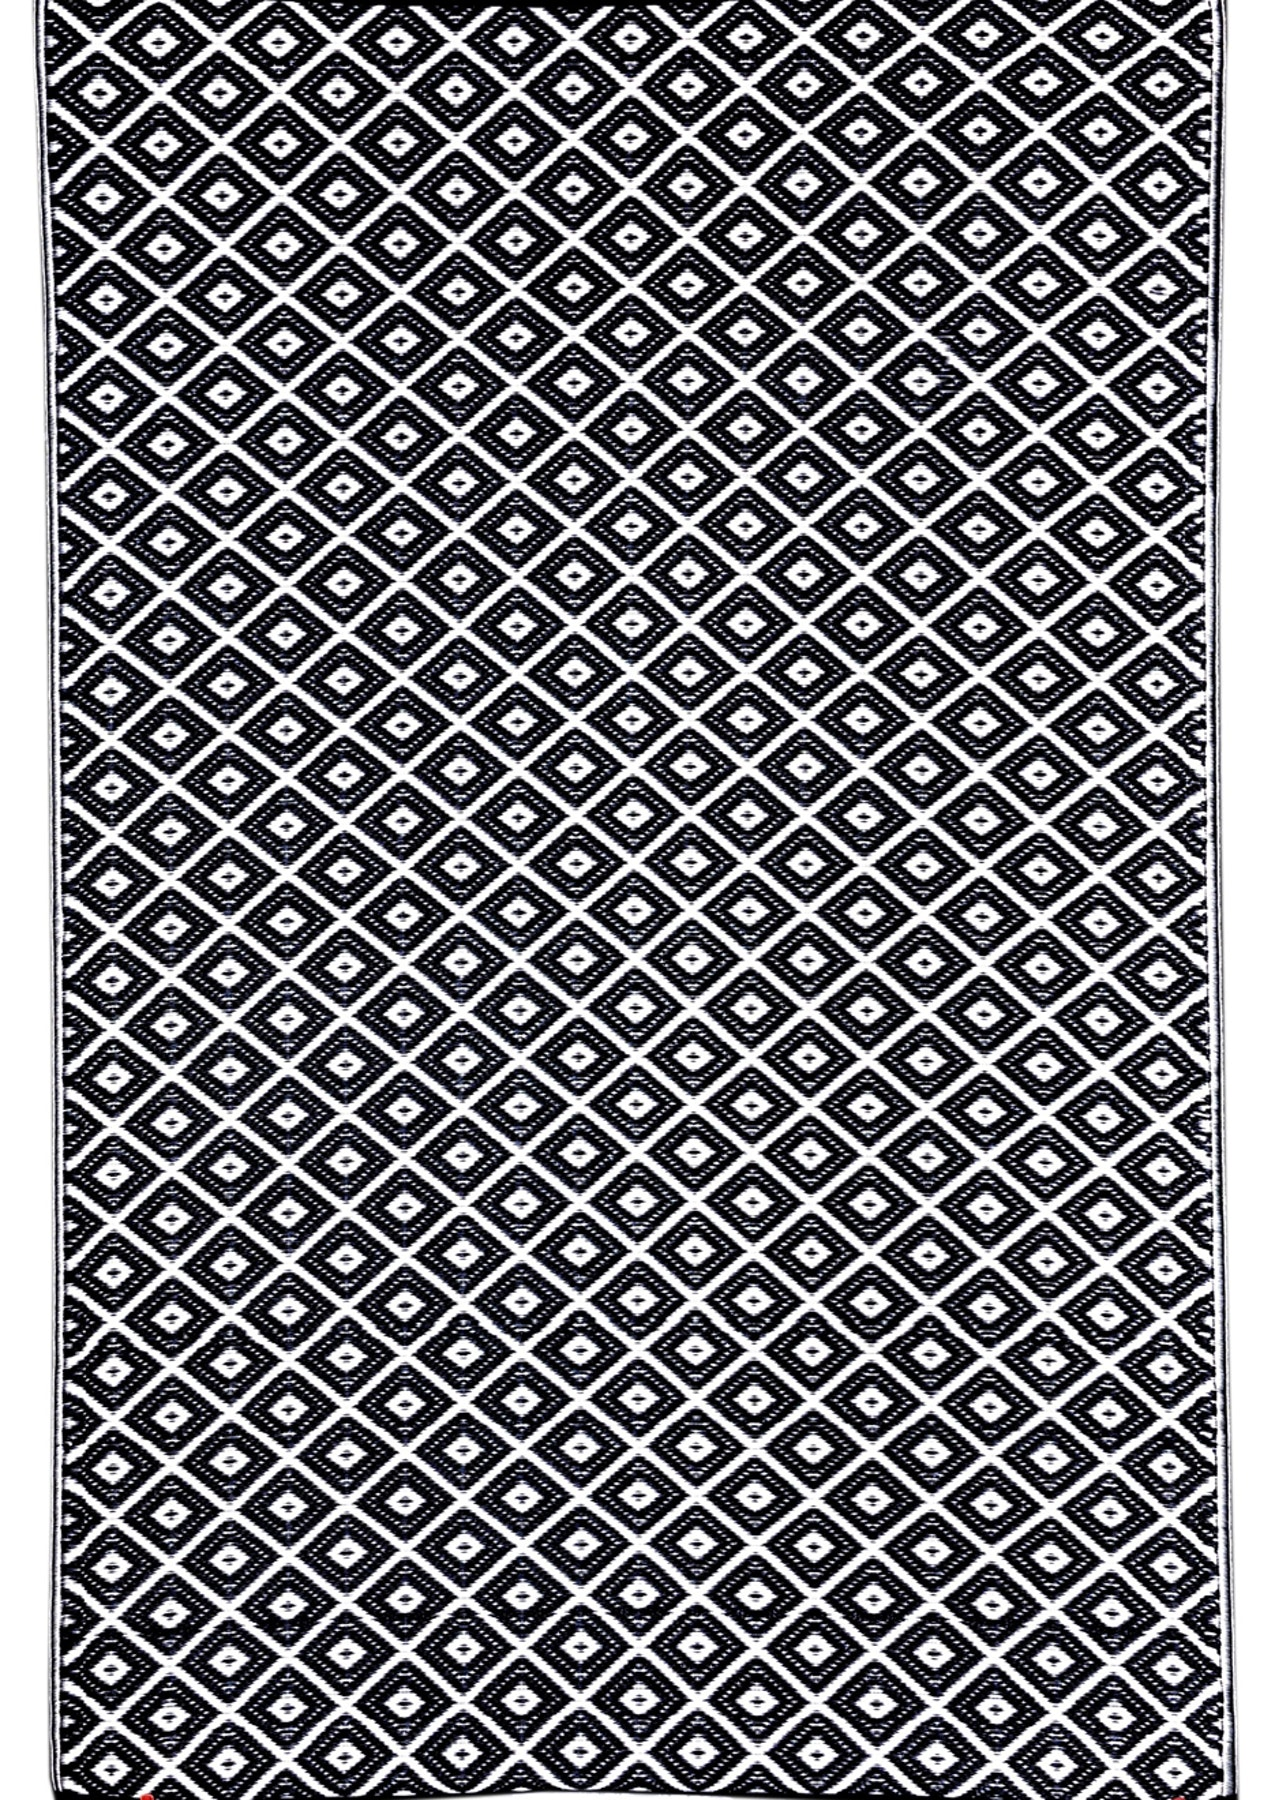 Fab Habitat Kimberely Black Recycled Polypropylene Indoor Outdoor Rug 90 X 179cm Modern Jute Rugs Onceit